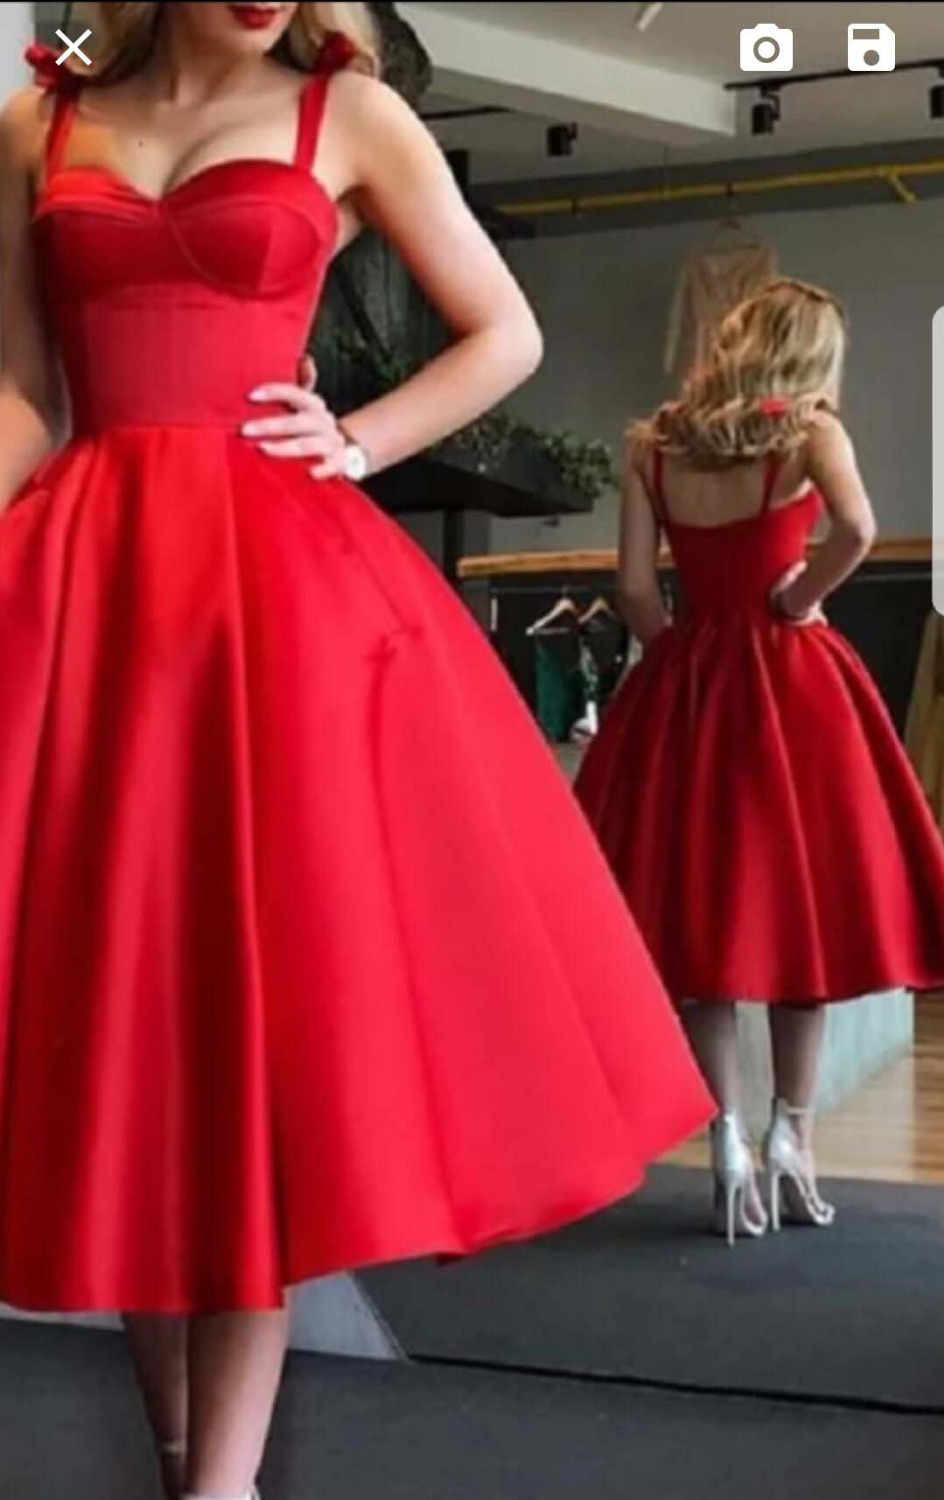 New Arrival 2019 Sexy Red   Cocktail     Dresses   Custom made A Line Spaghetti Straps Tea Length Formal Prom   Cocktail   Party Gown